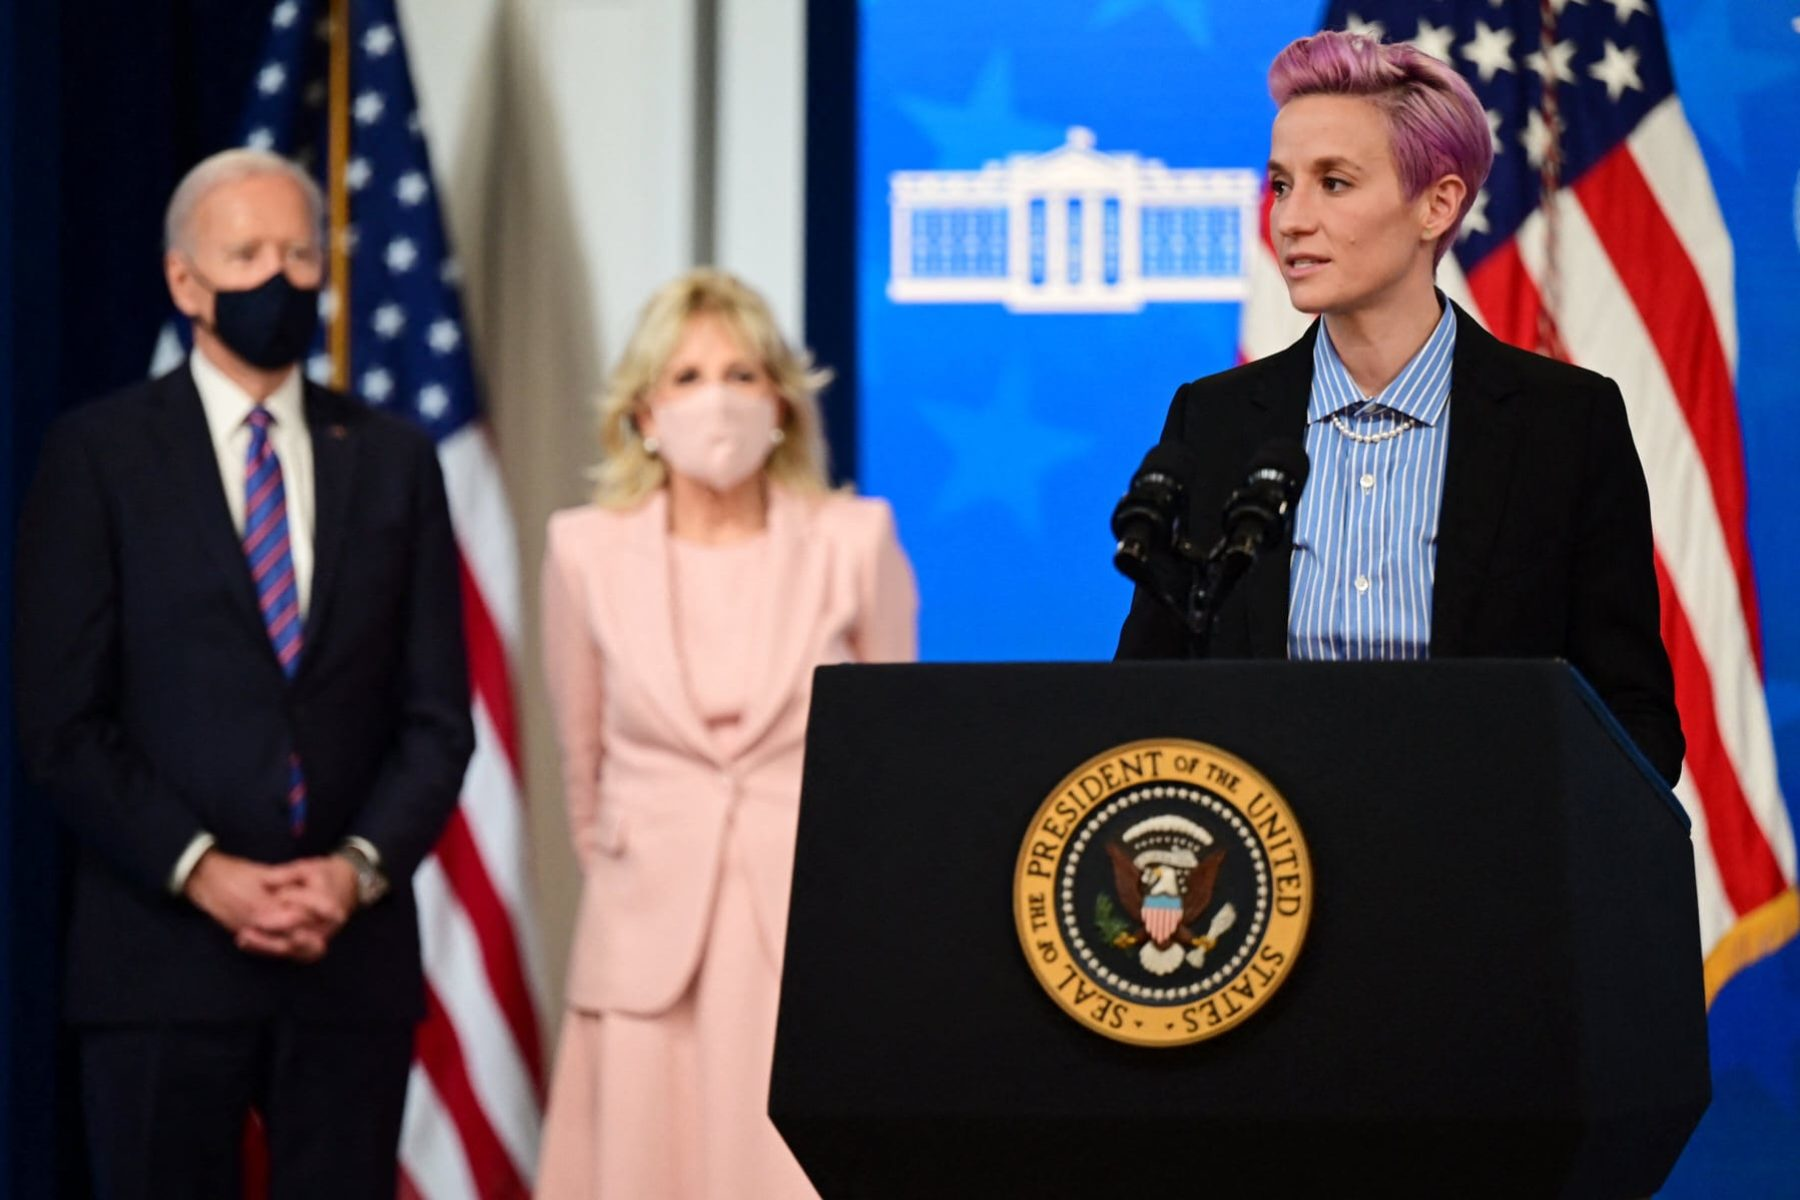 US soccer player Megan Rapinoe (R) speaks, flanked by US President Joe Biden (L) and First Lady Jill Biden during an Equal Pay Day event.